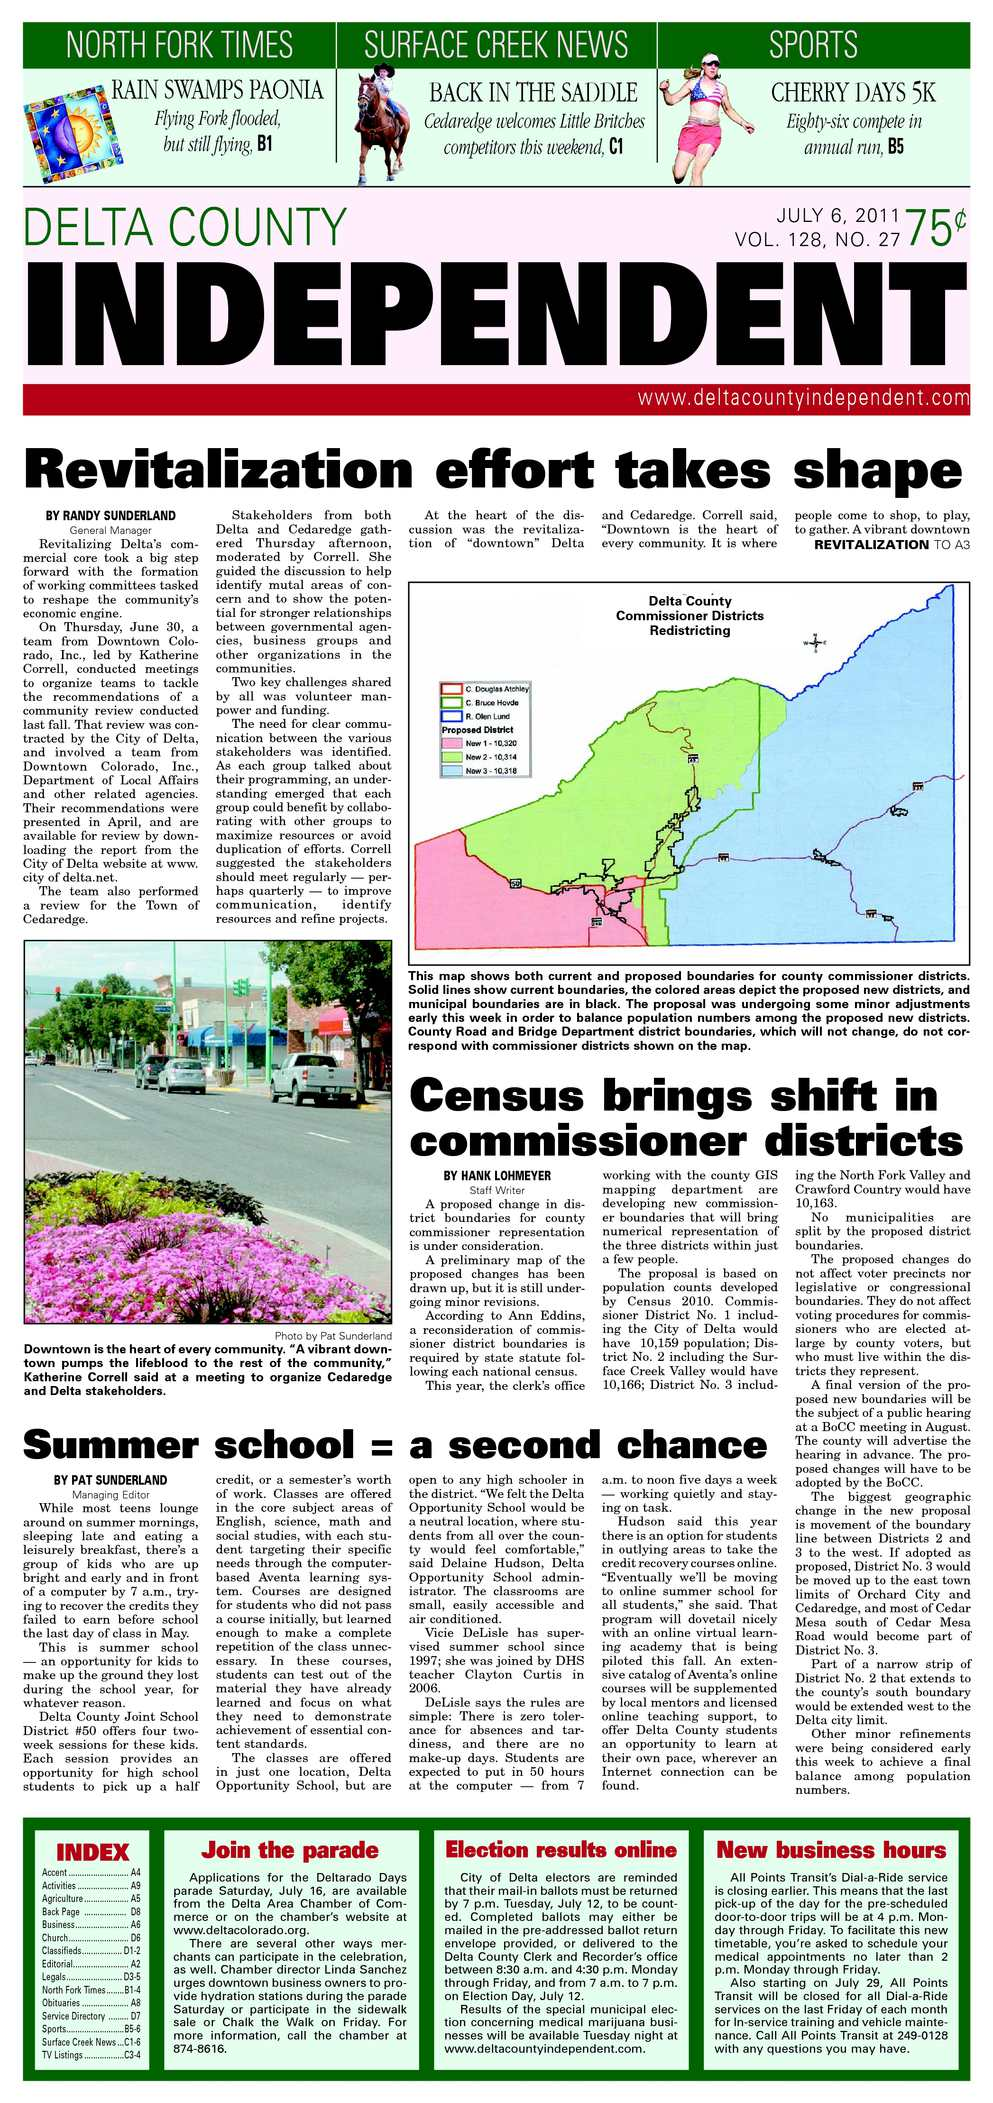 Calaméo - Delta County Independent, Issue 27, July 6, 2011